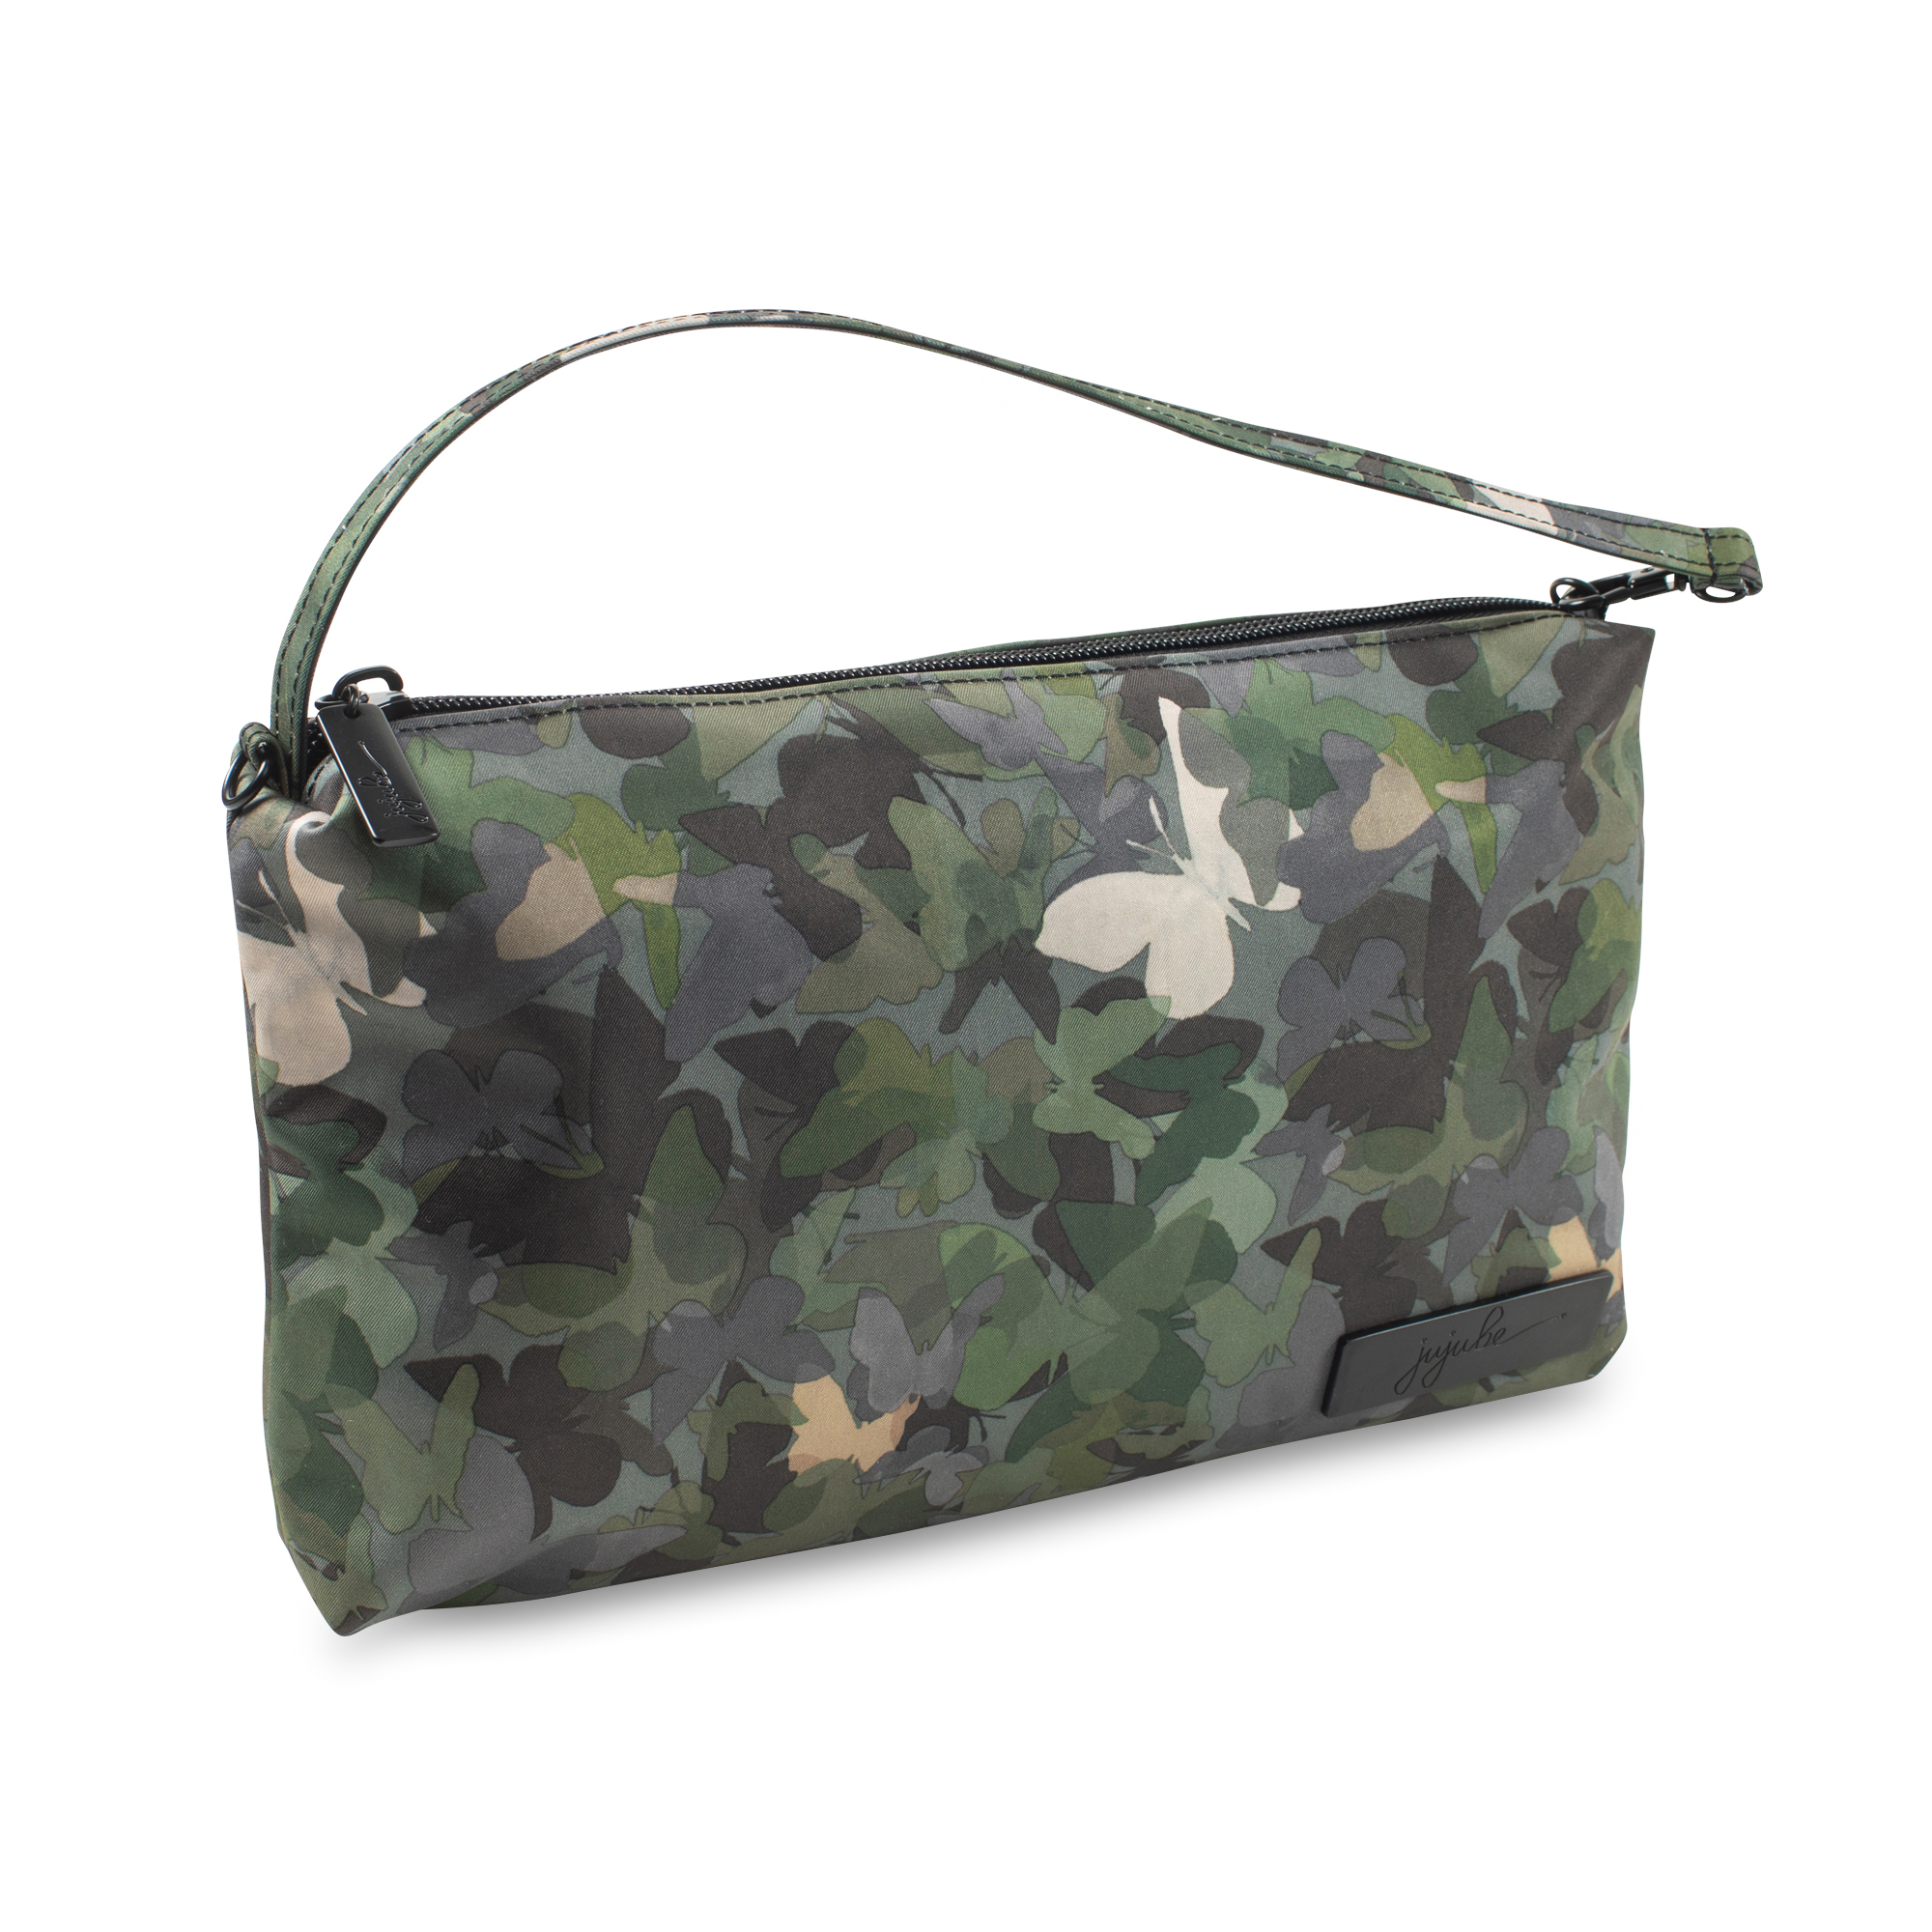 Jujube Be Quick Wristlet in Butterfly Forest